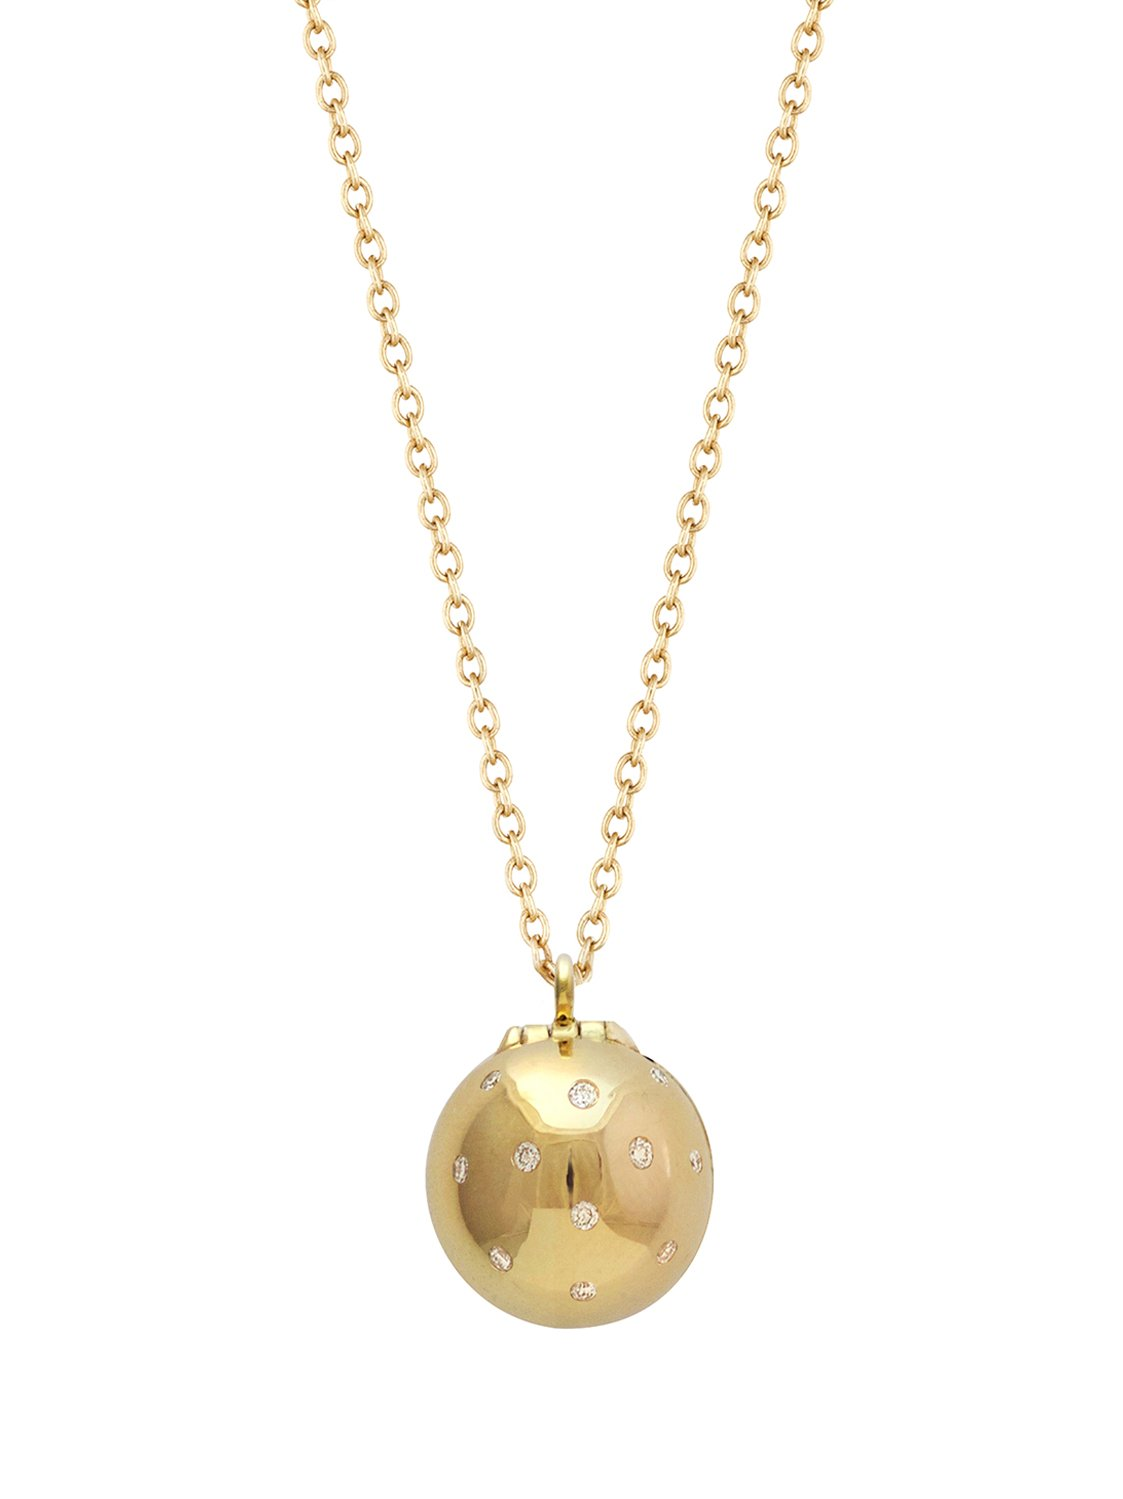 Letter A Signature Sphere Orb Necklace in 18k Yellow Gold with Diamonds and Red Enamel